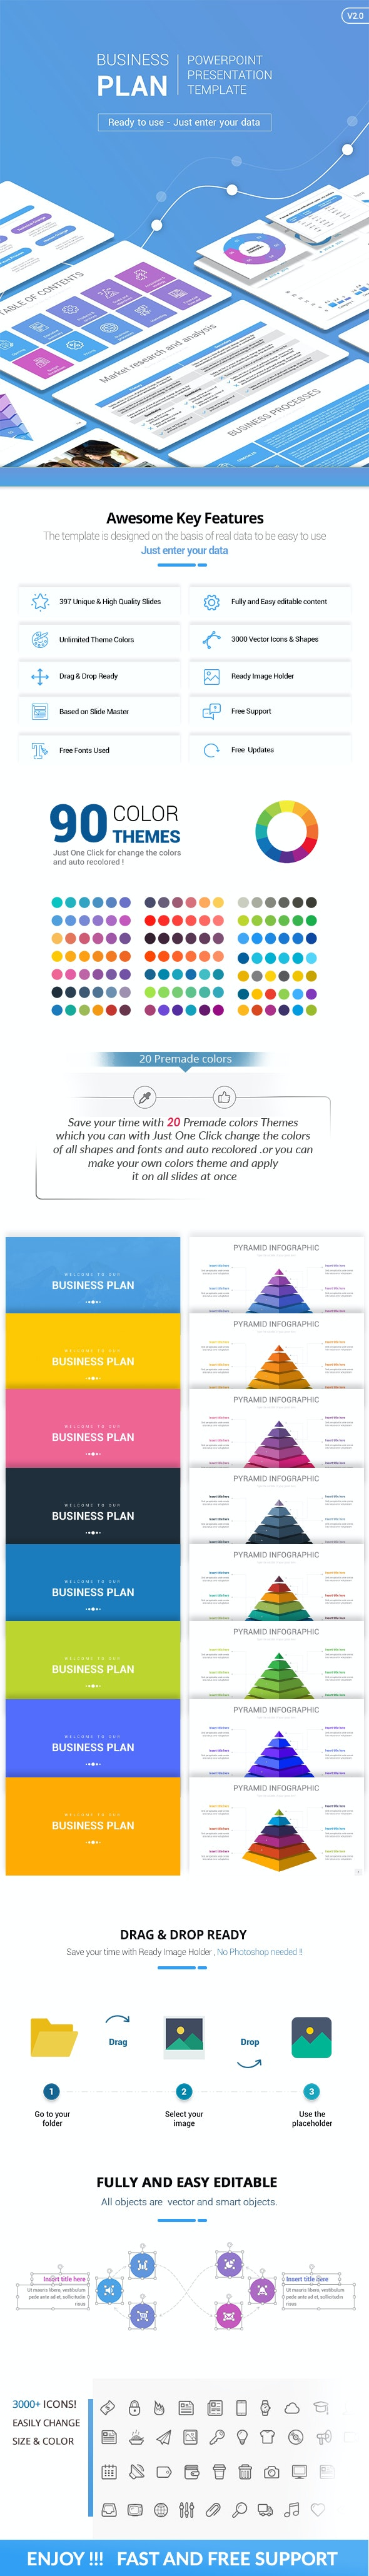 Business Plan - PowerPoint Presentation Template - Pitch Deck PowerPoint Templates